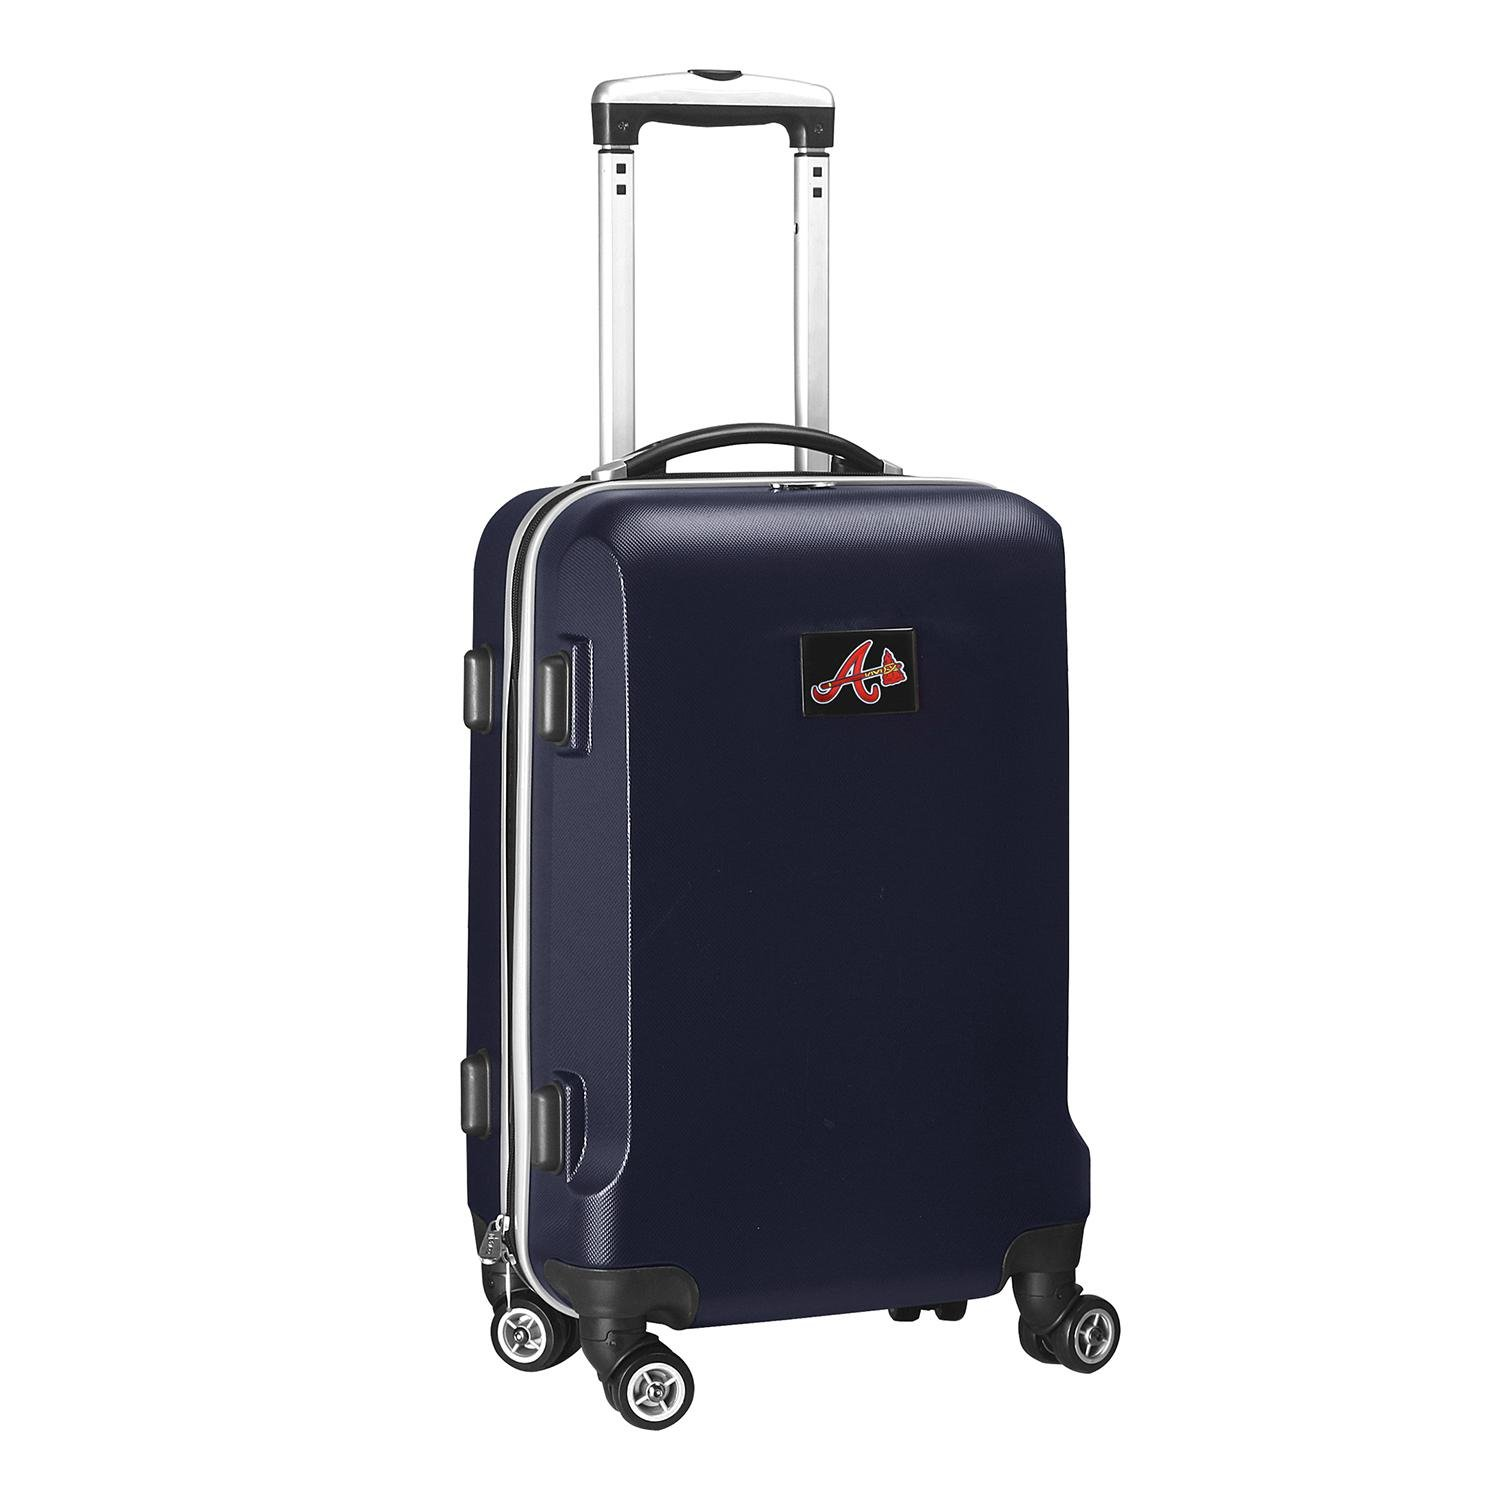 MLB Atlanta Braves Carry-On Hardcase Spinner, Navy by Denco